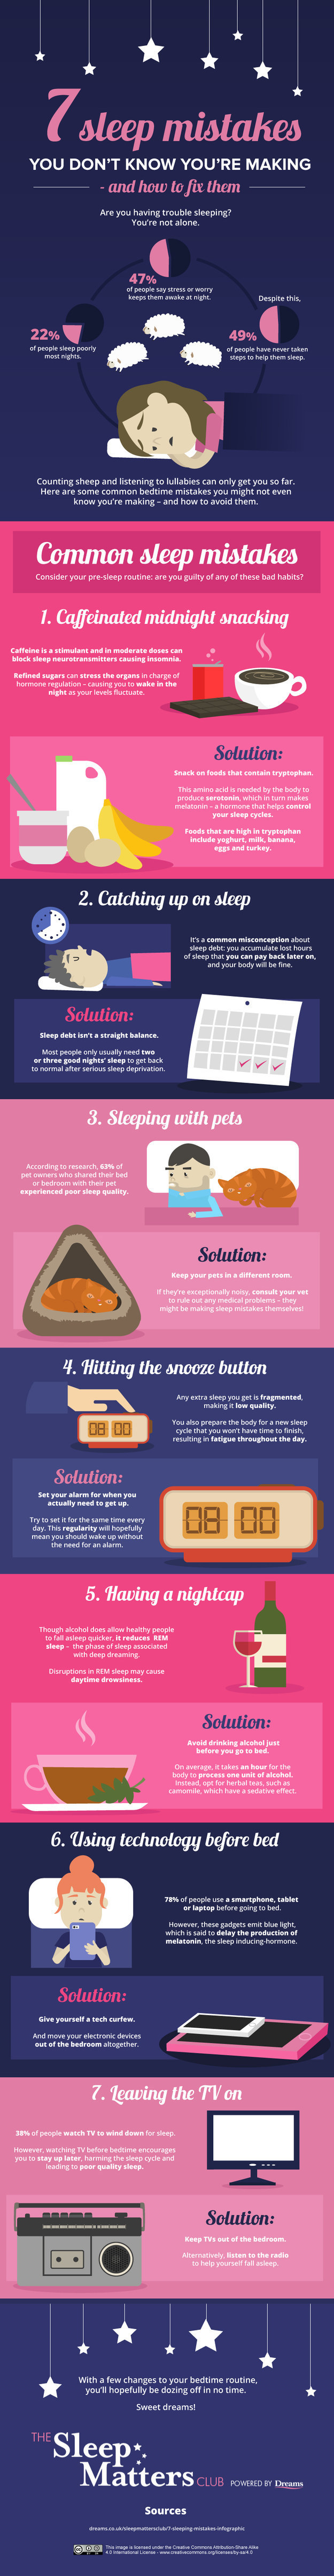 AD-Charts-That-Will-Help-You-Sleep-Better-08